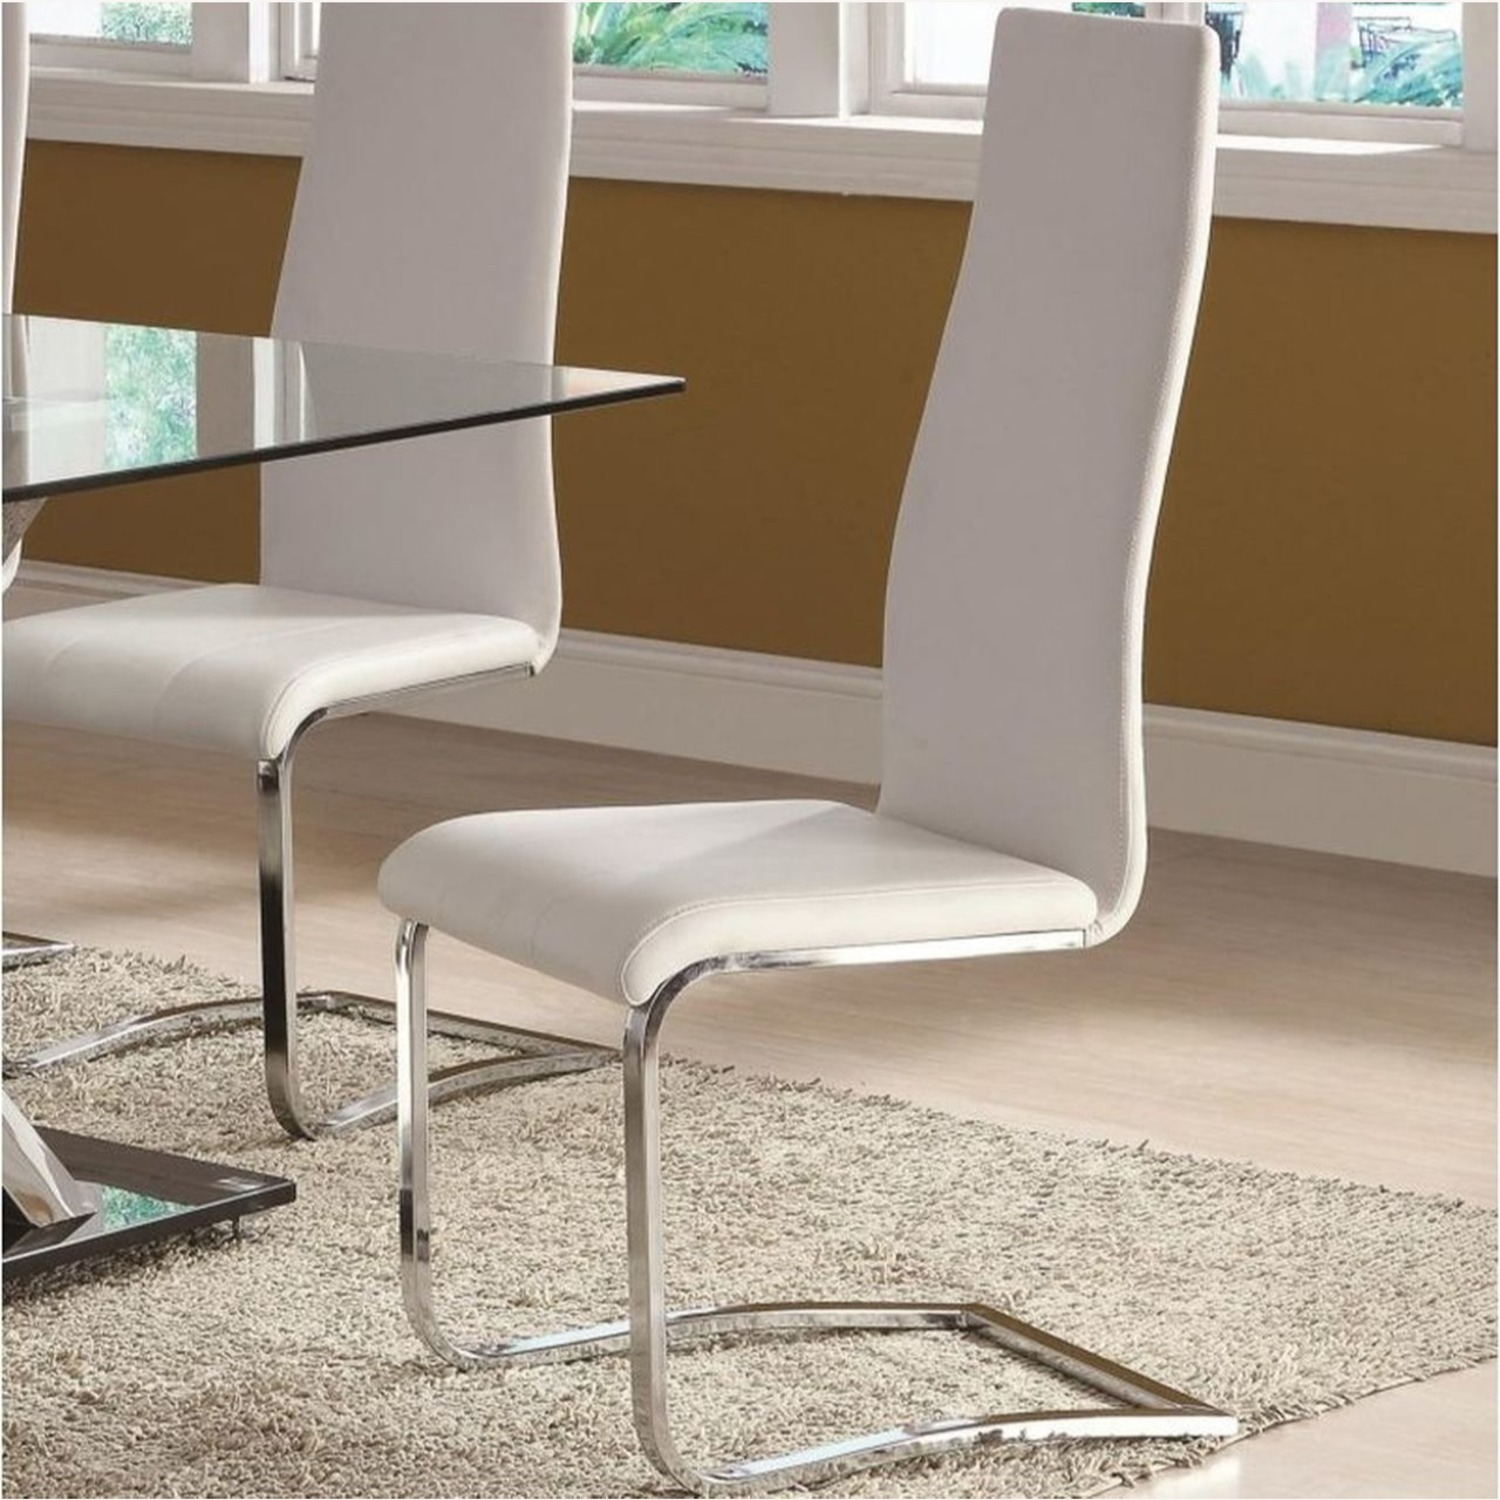 Iconic Breuer Style Side Chair In White Leather - image-2